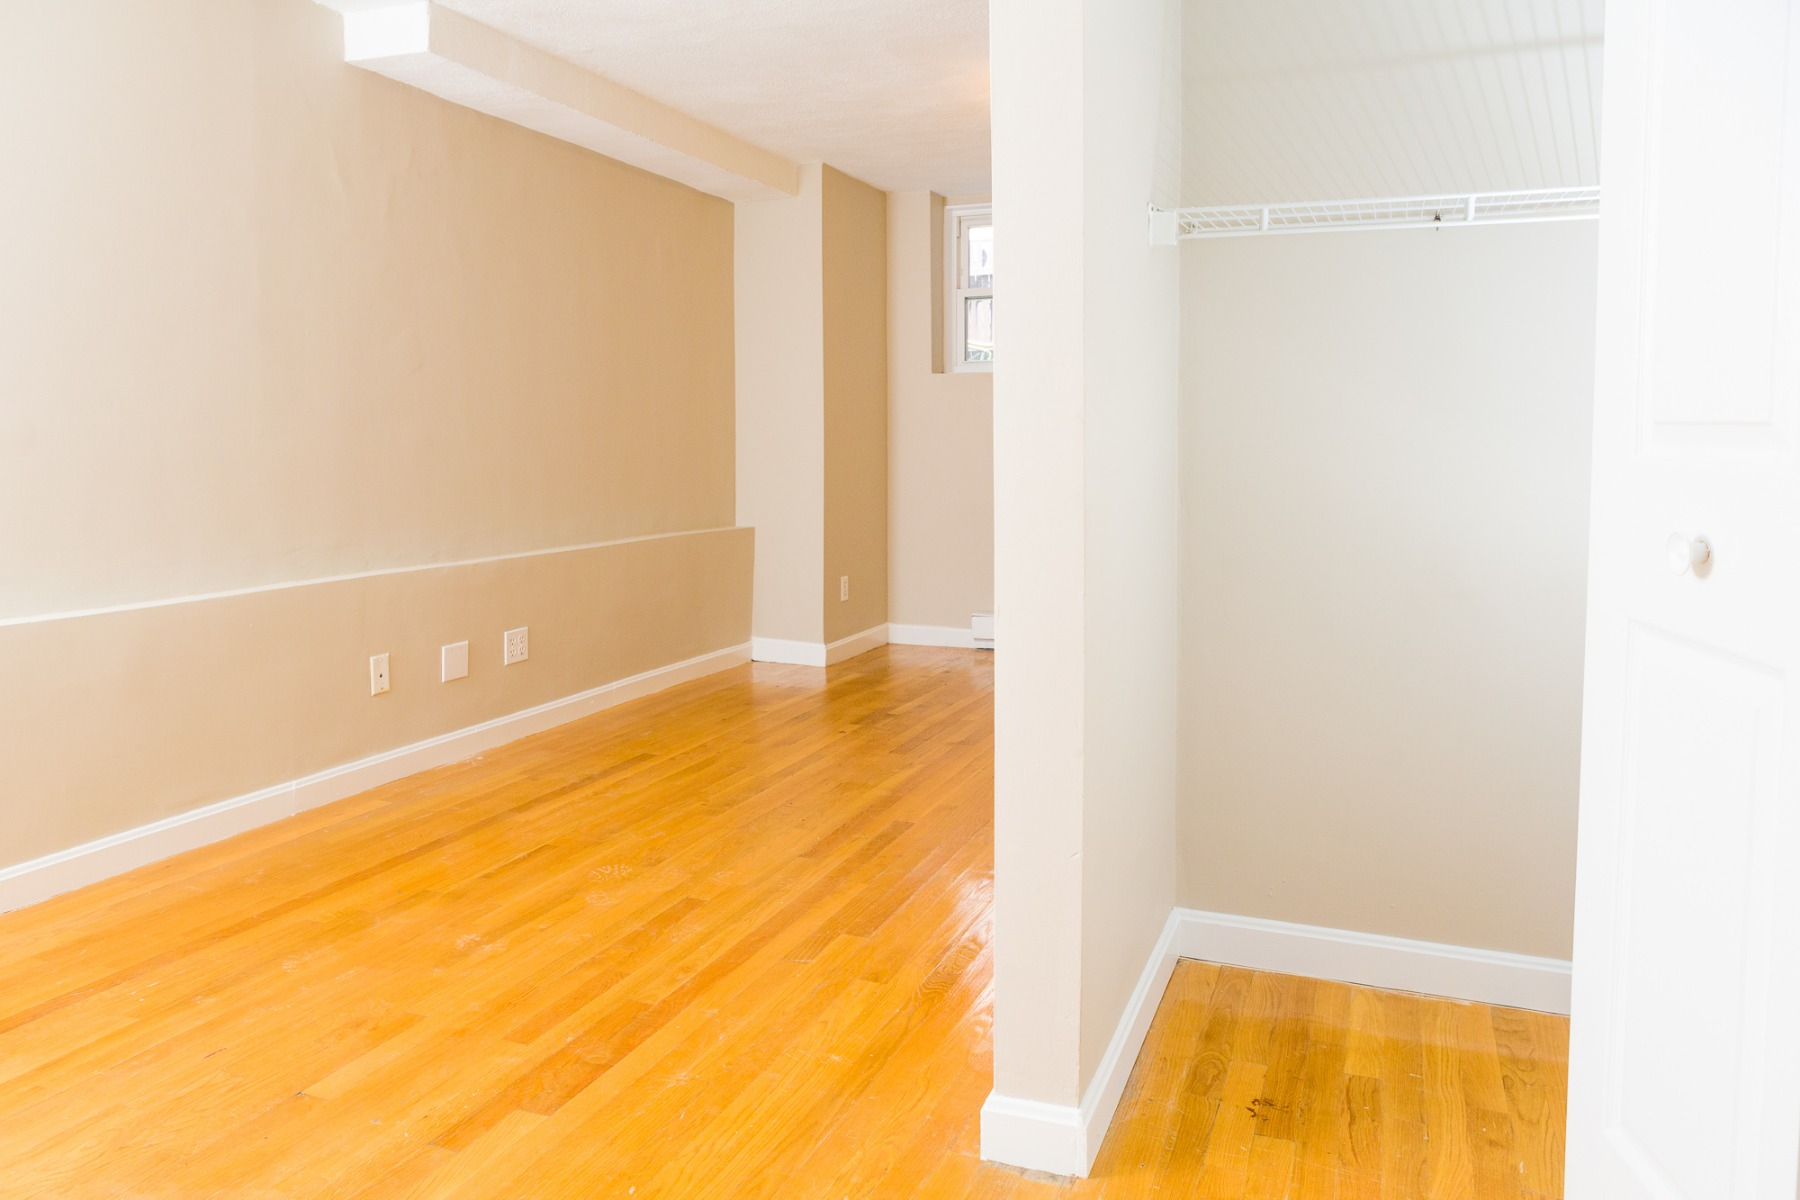 3 Beds, 1 Bath apartment in Boston for $2,300